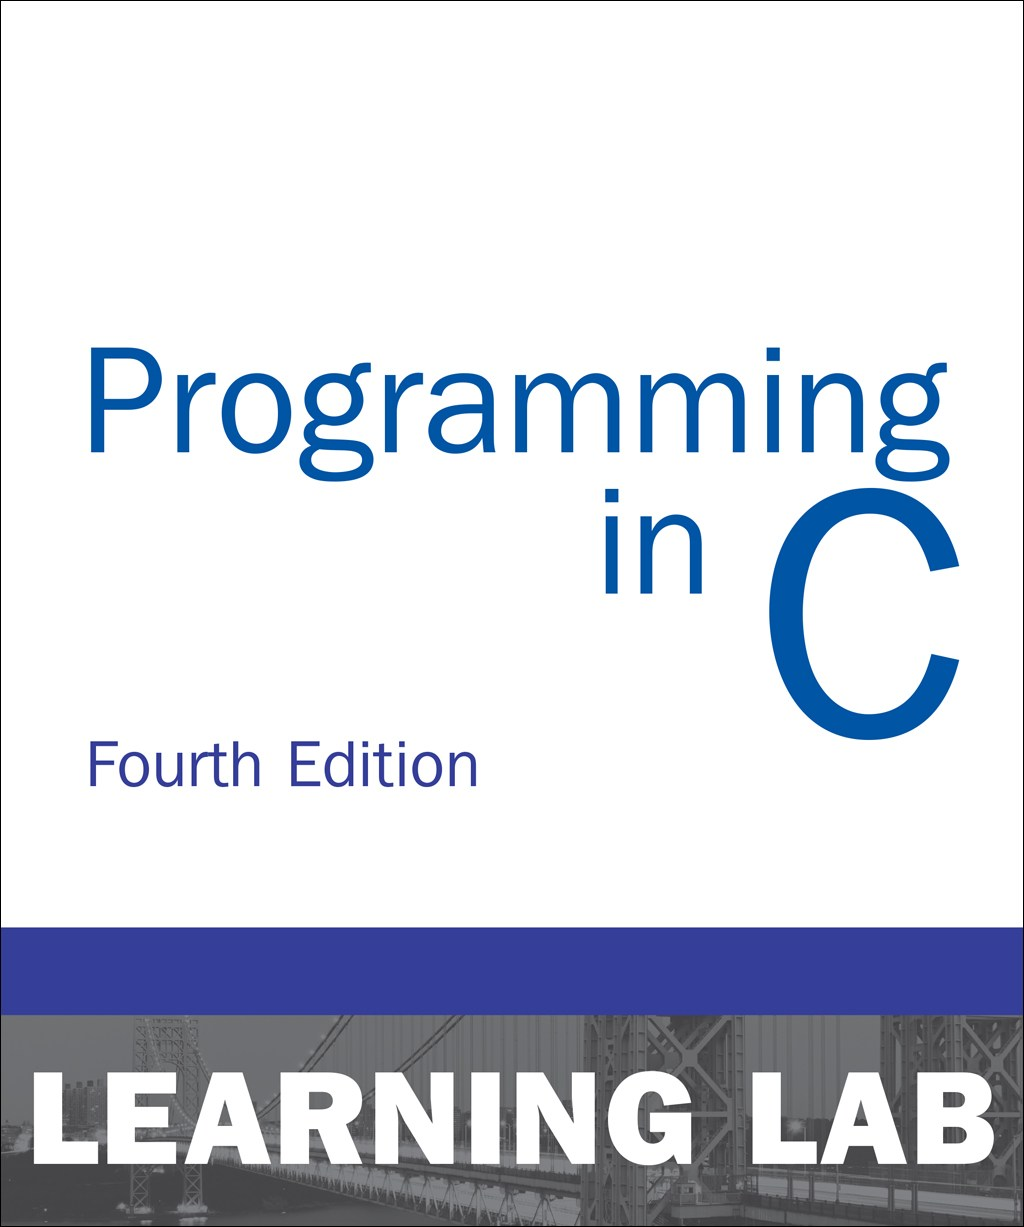 Programming in C (Learning Lab), 4th Edition